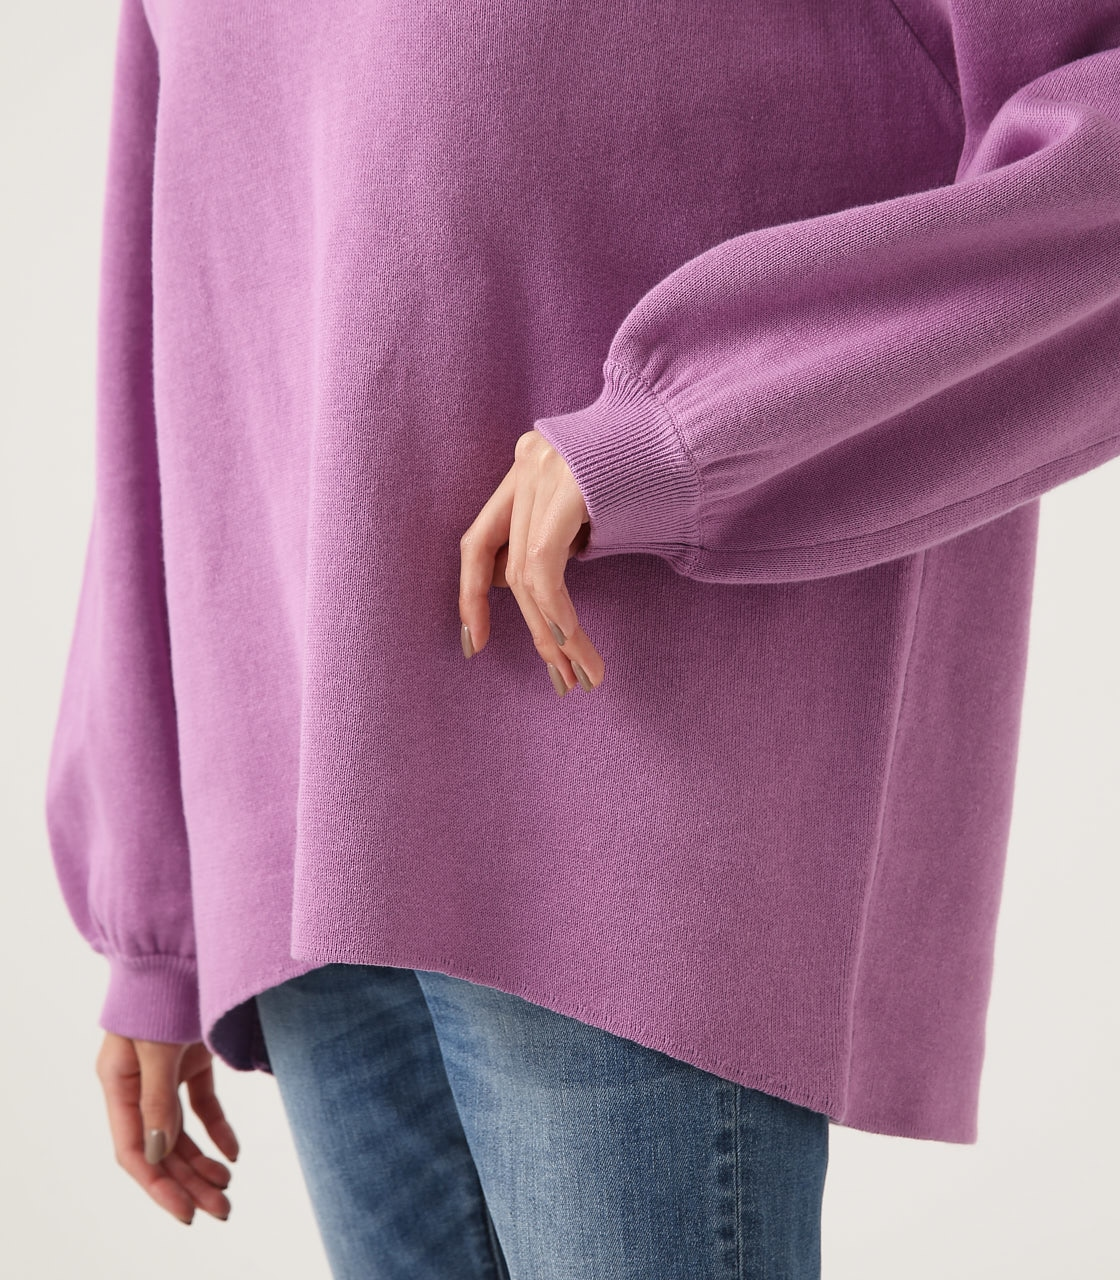 【AZUL BY MOUSSY】SWEATTER Vネック LOOSE TOPS 詳細画像 L/PUR 9